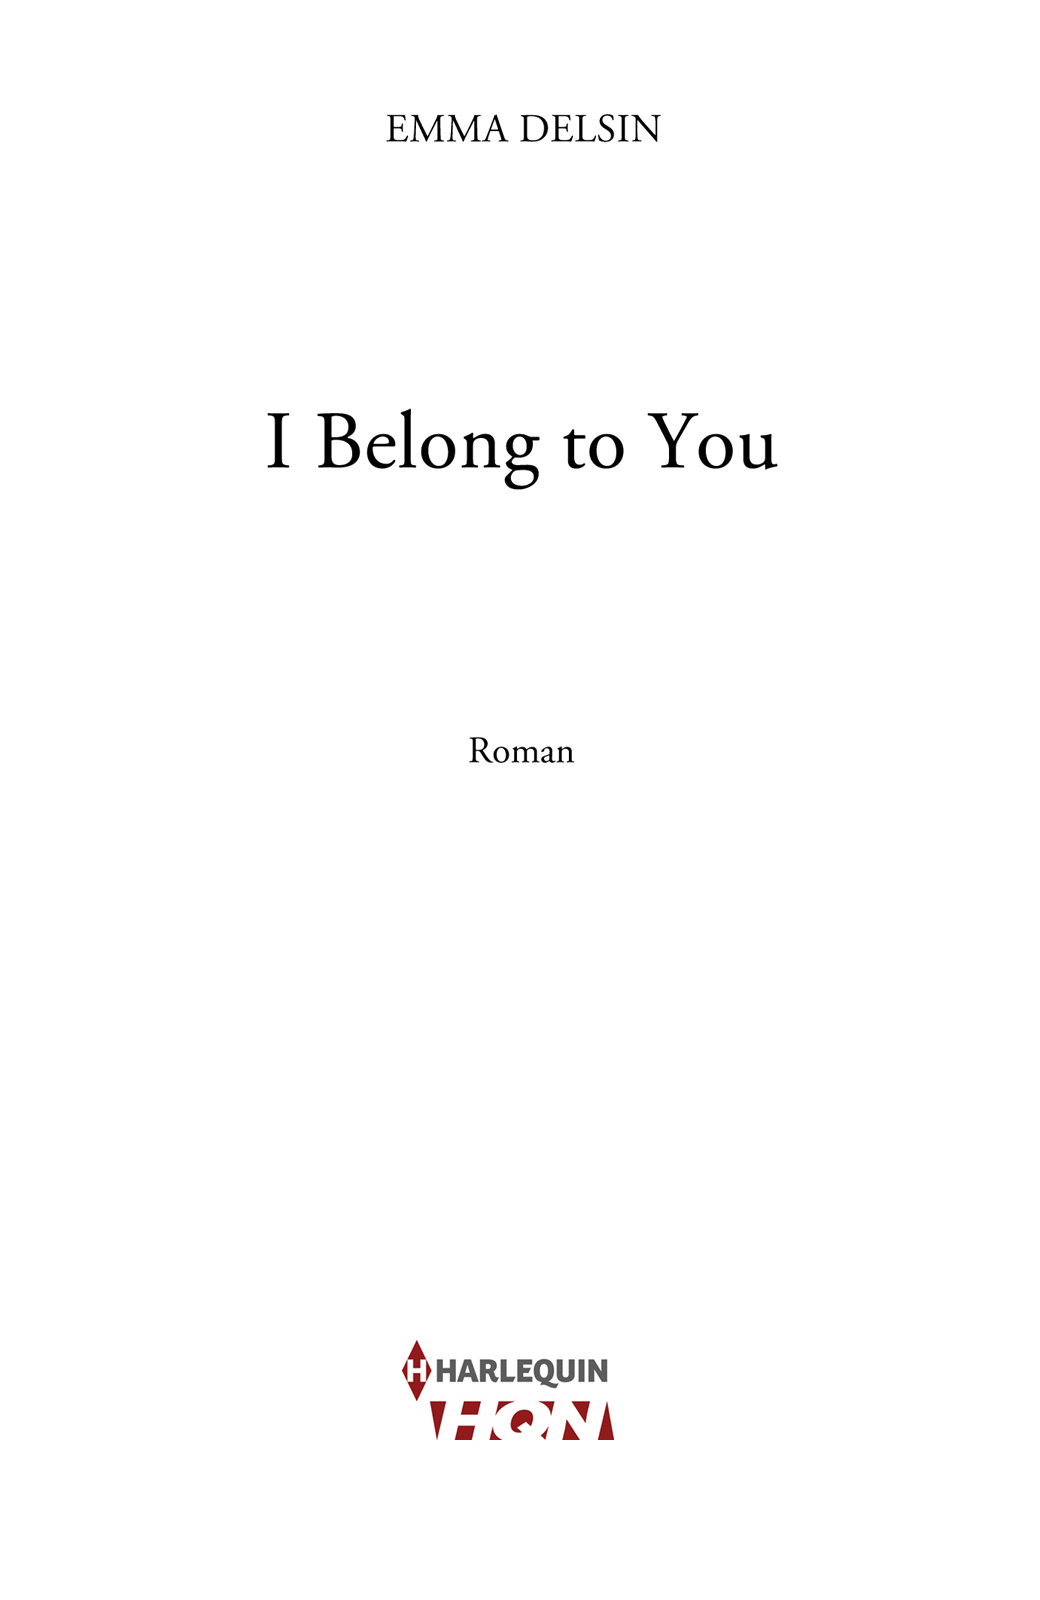 Page de titre : GÉRALDINE ROUJOL, I Belong to You, Roman, Harlequin HQN